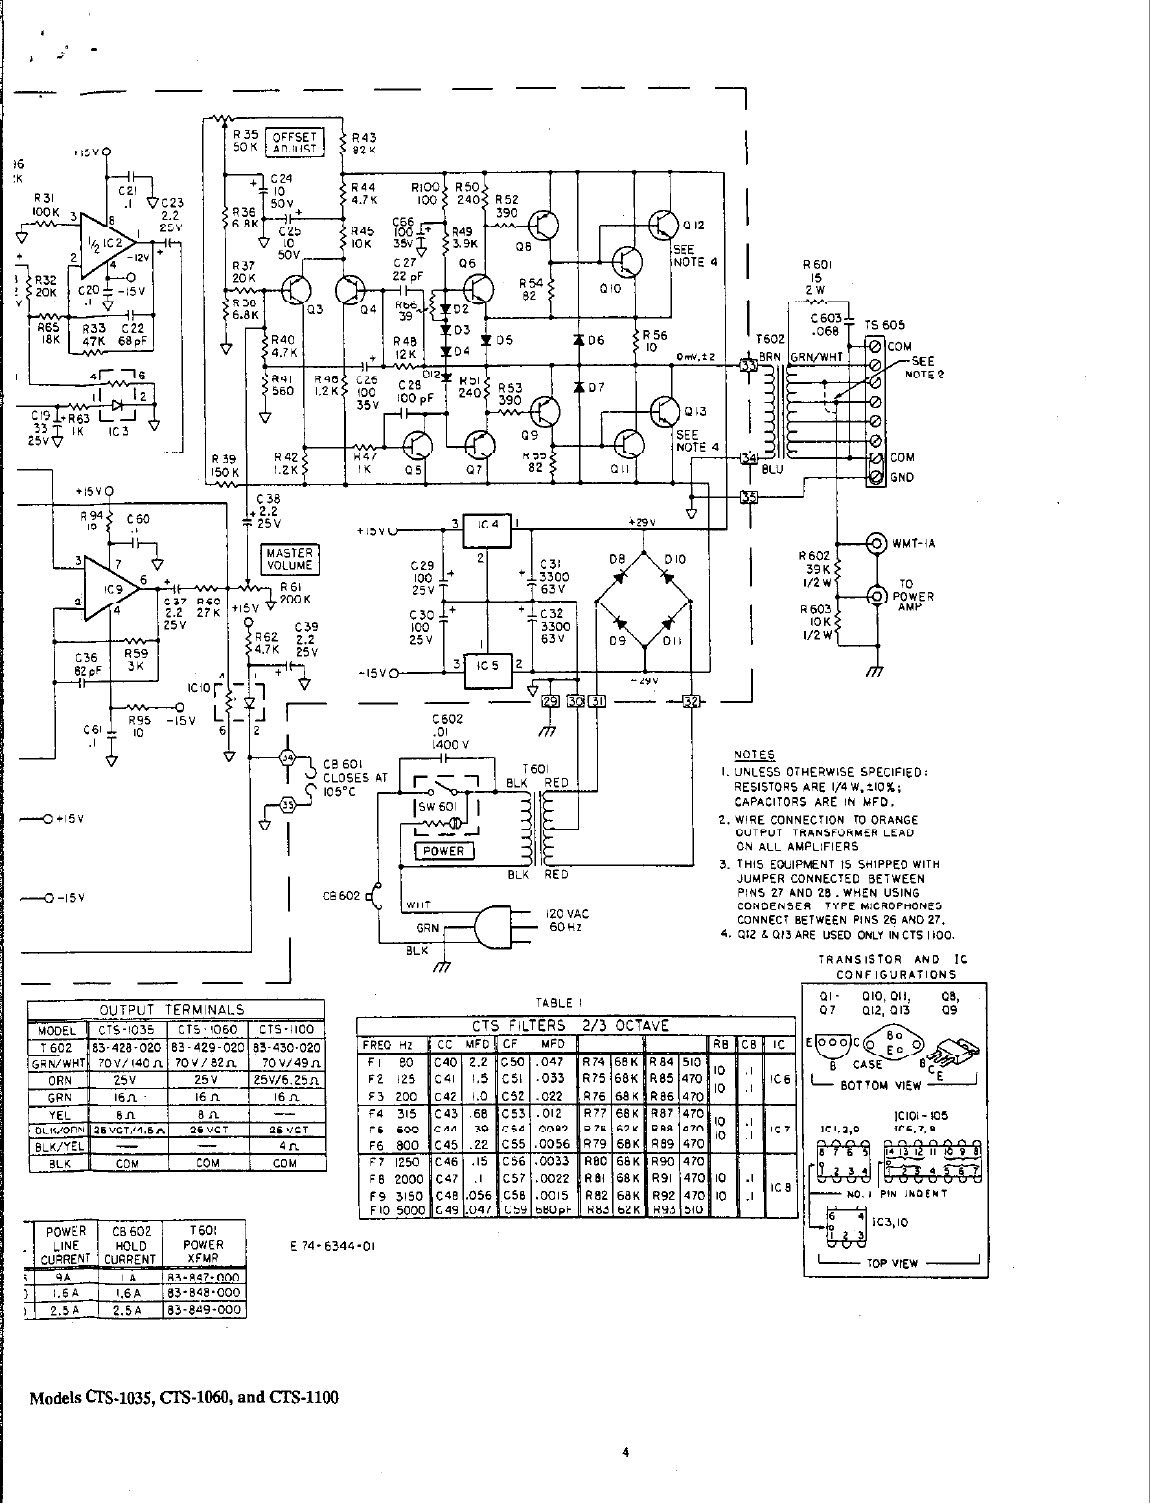 Page 3 of Bogen Stereo Amplifier CTS-1100 User Guide